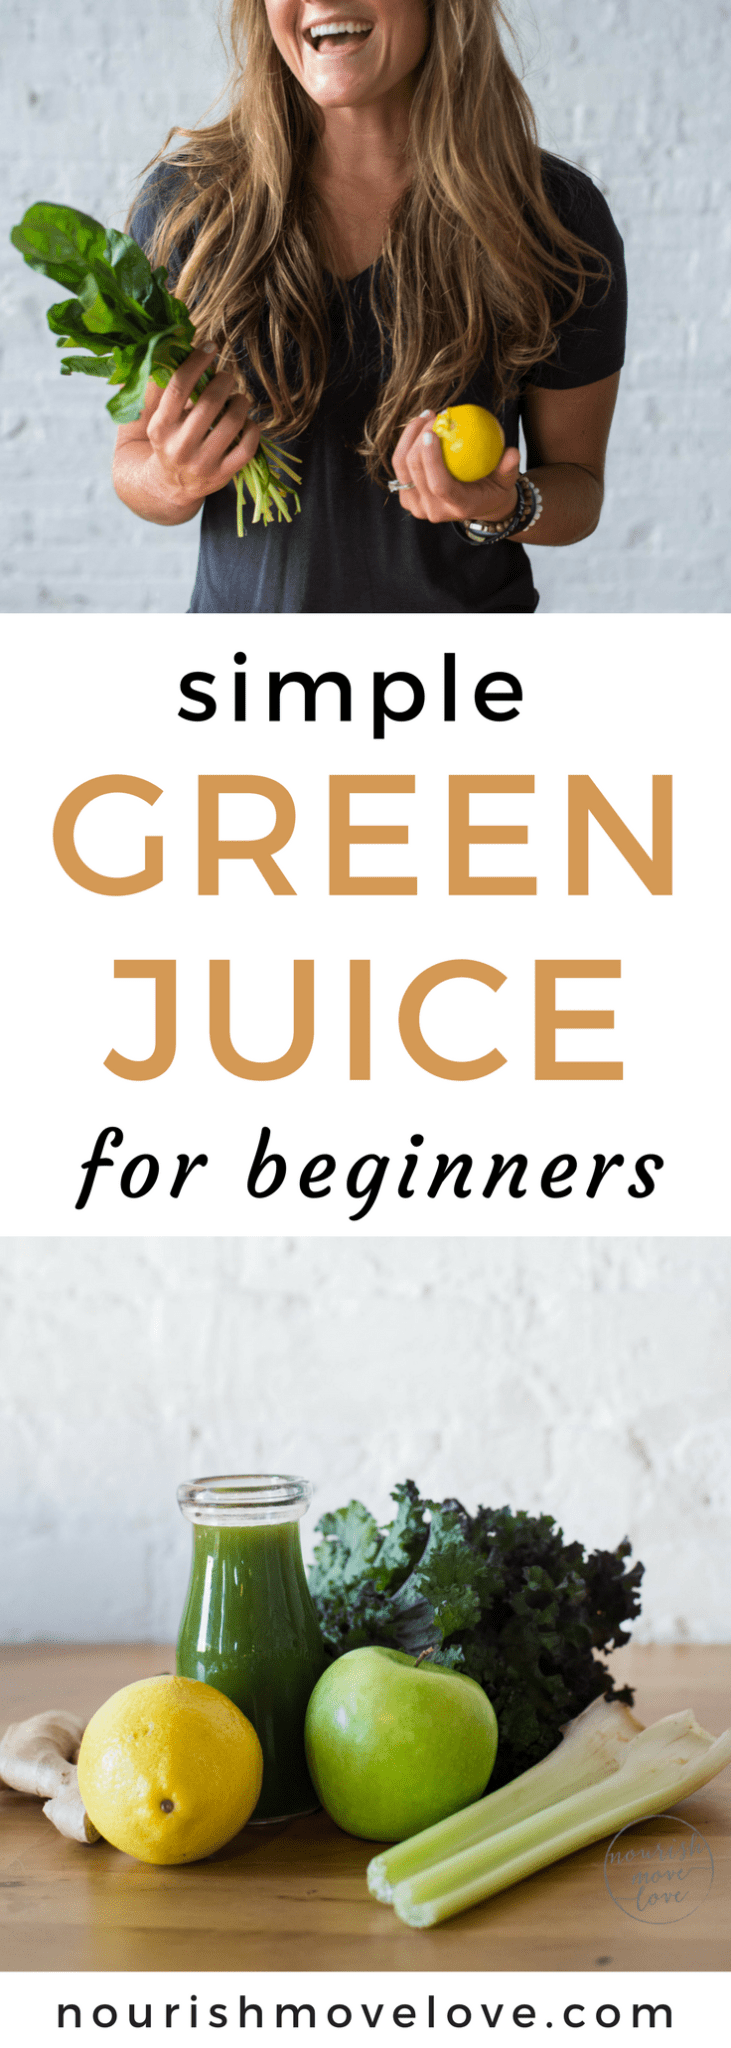 simple green juice for beginners | www.nourishmovelove.com